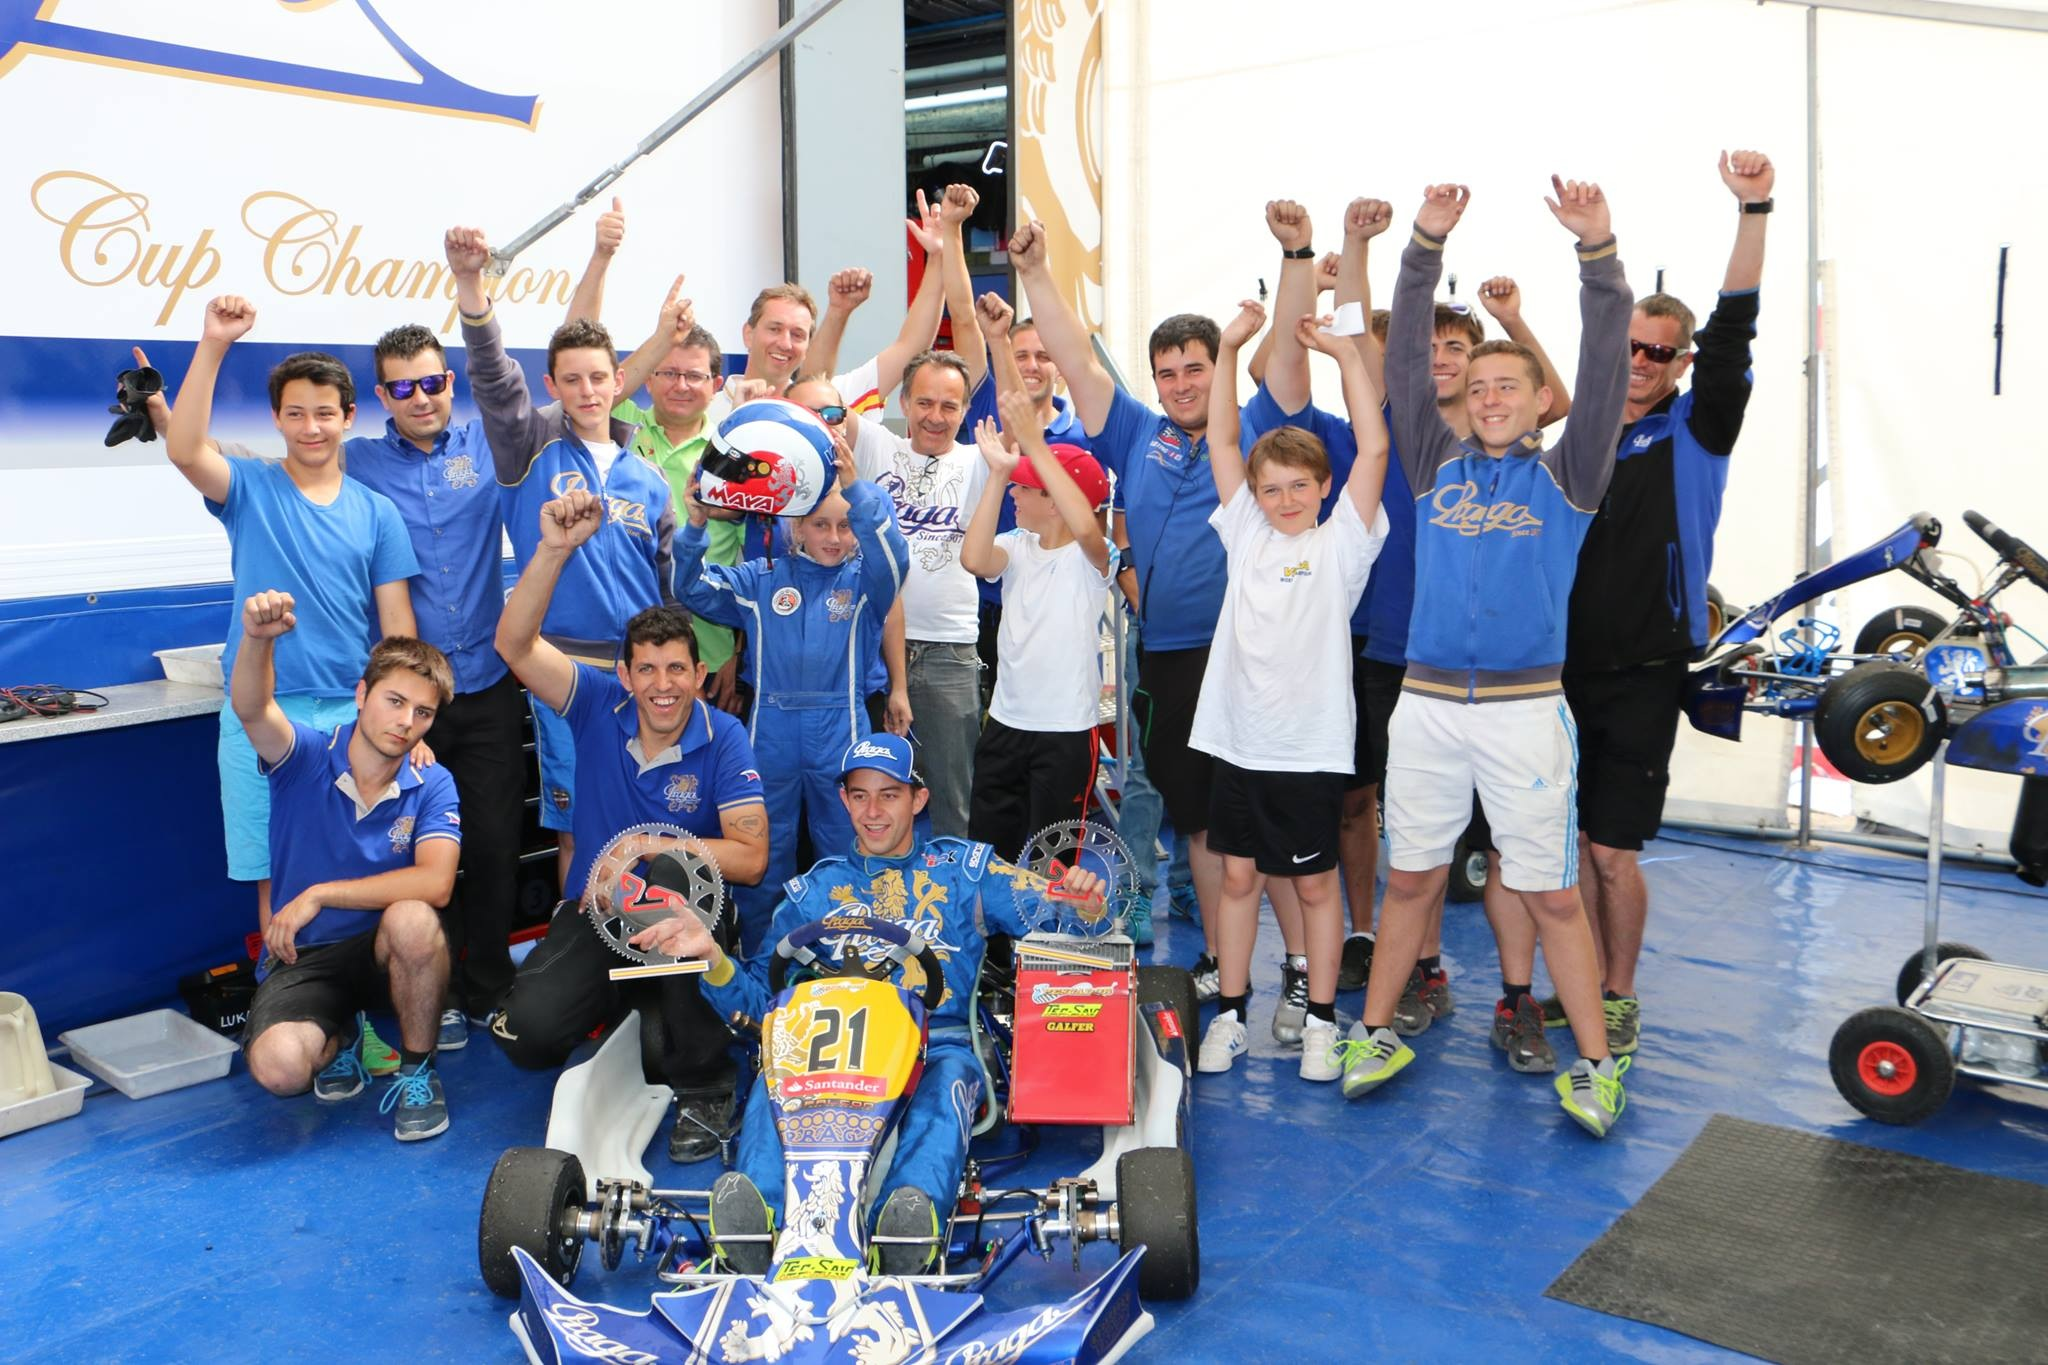 Spain Championship Campillos 1st round Praga won in KZ2 category